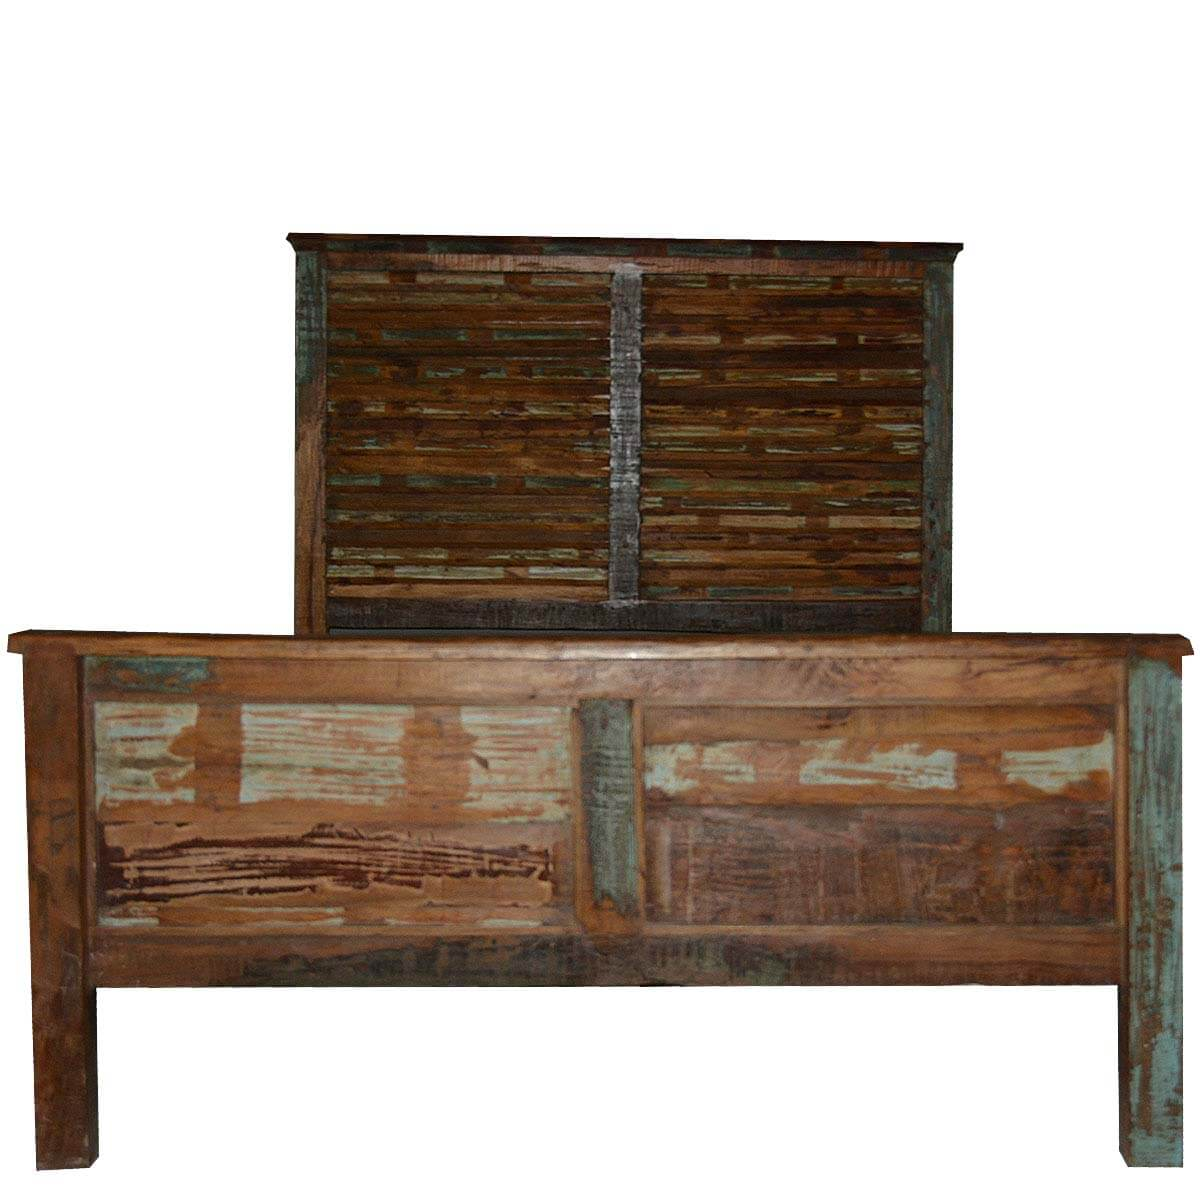 Artisan Collection Rustic Dream Reclaimed Headboard Wood Queen Bed